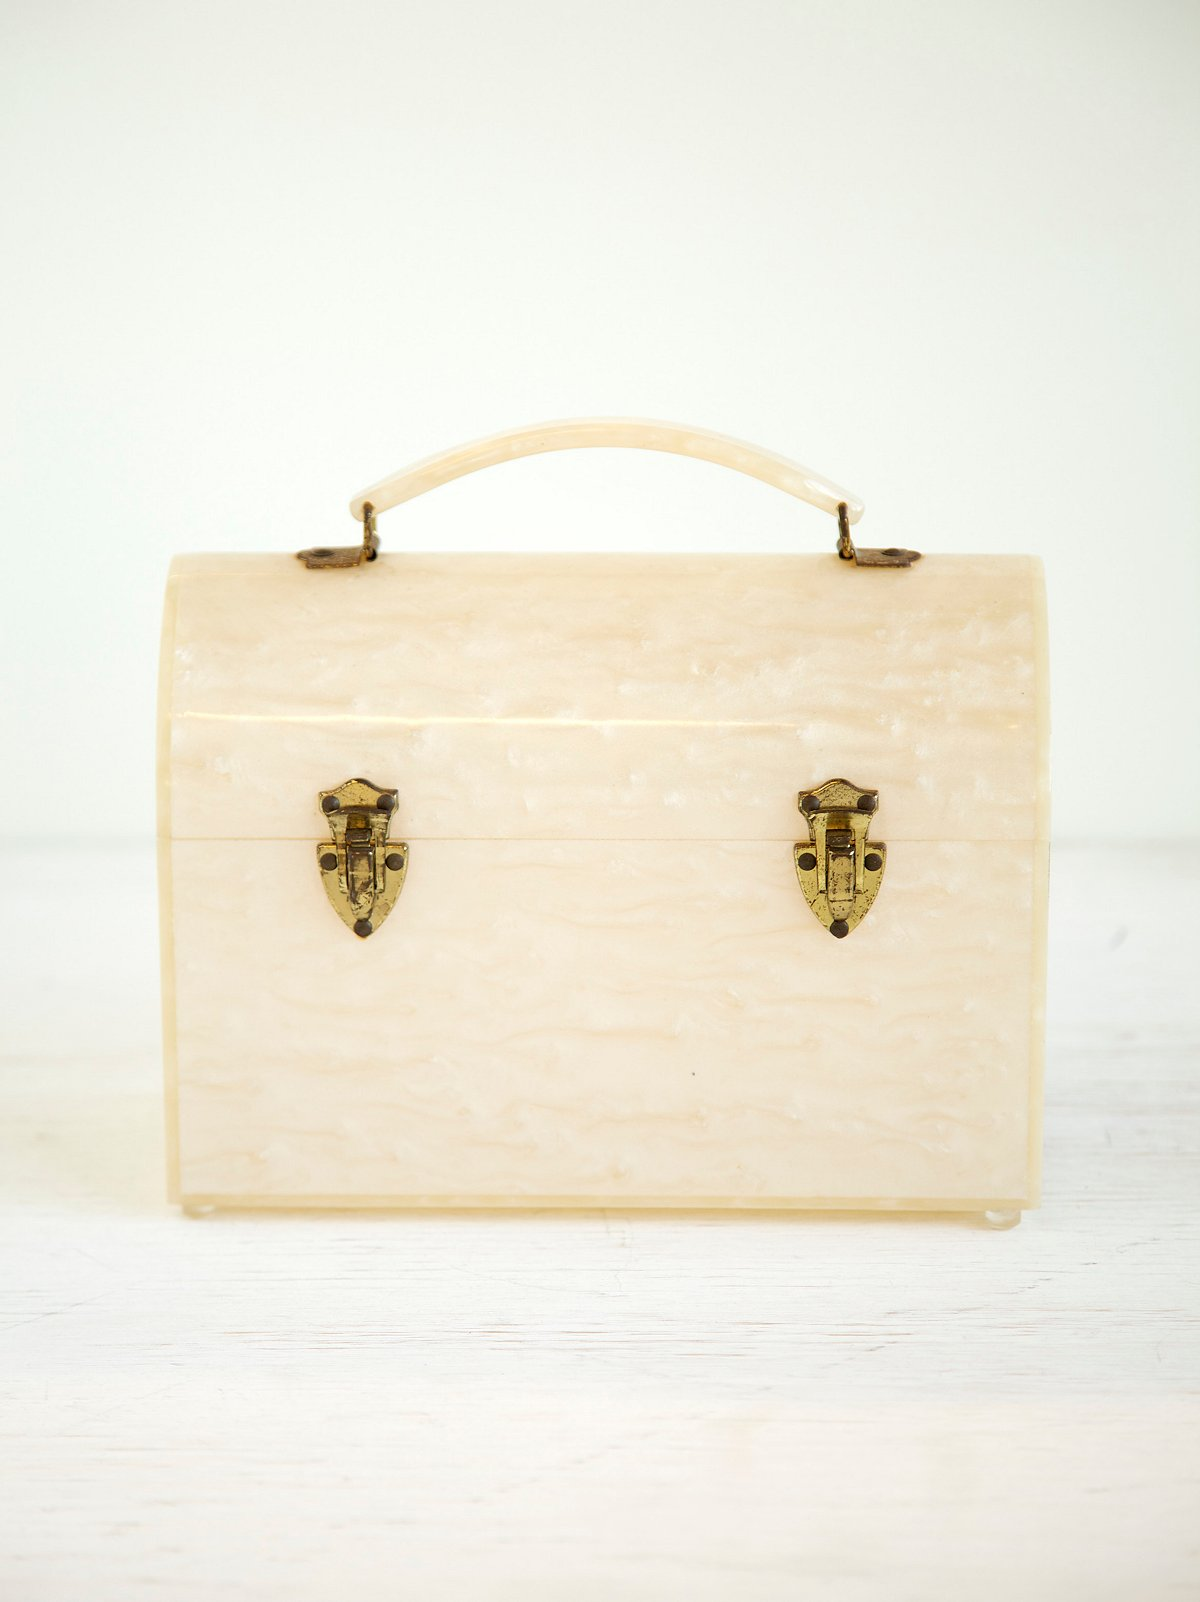 Vintage 1940s Perspex Lunch Box